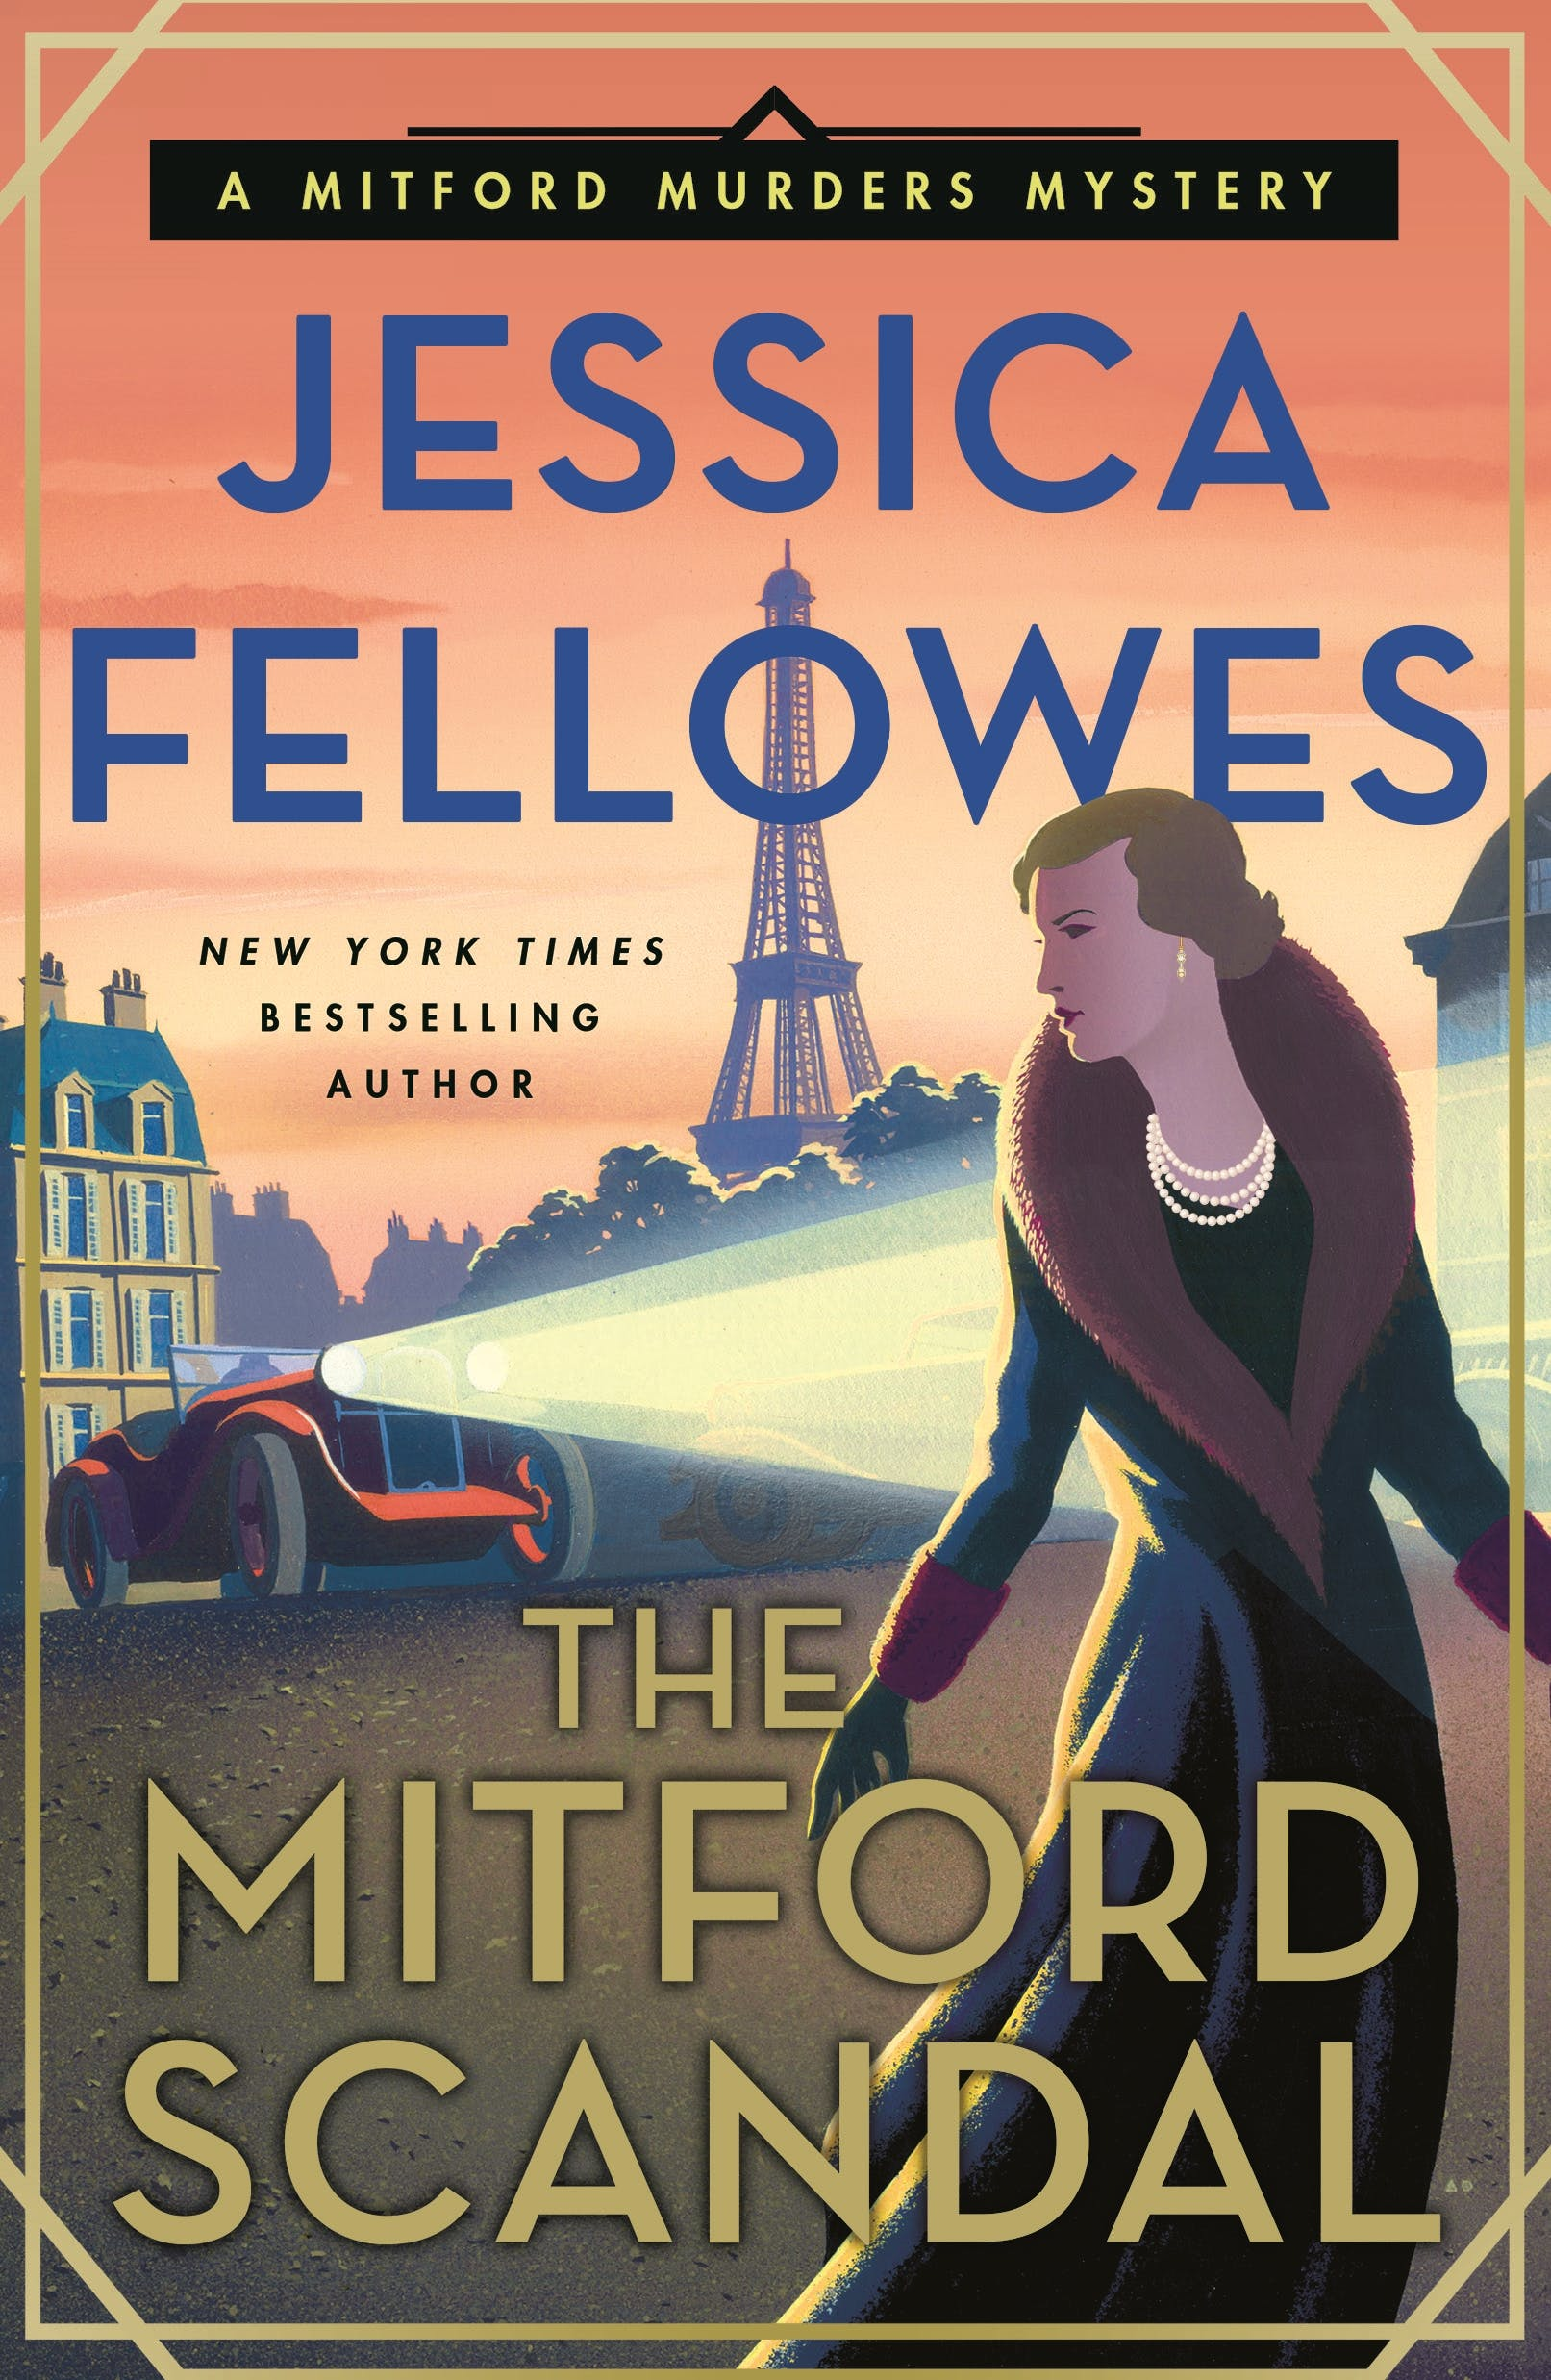 Image of The Mitford Scandal